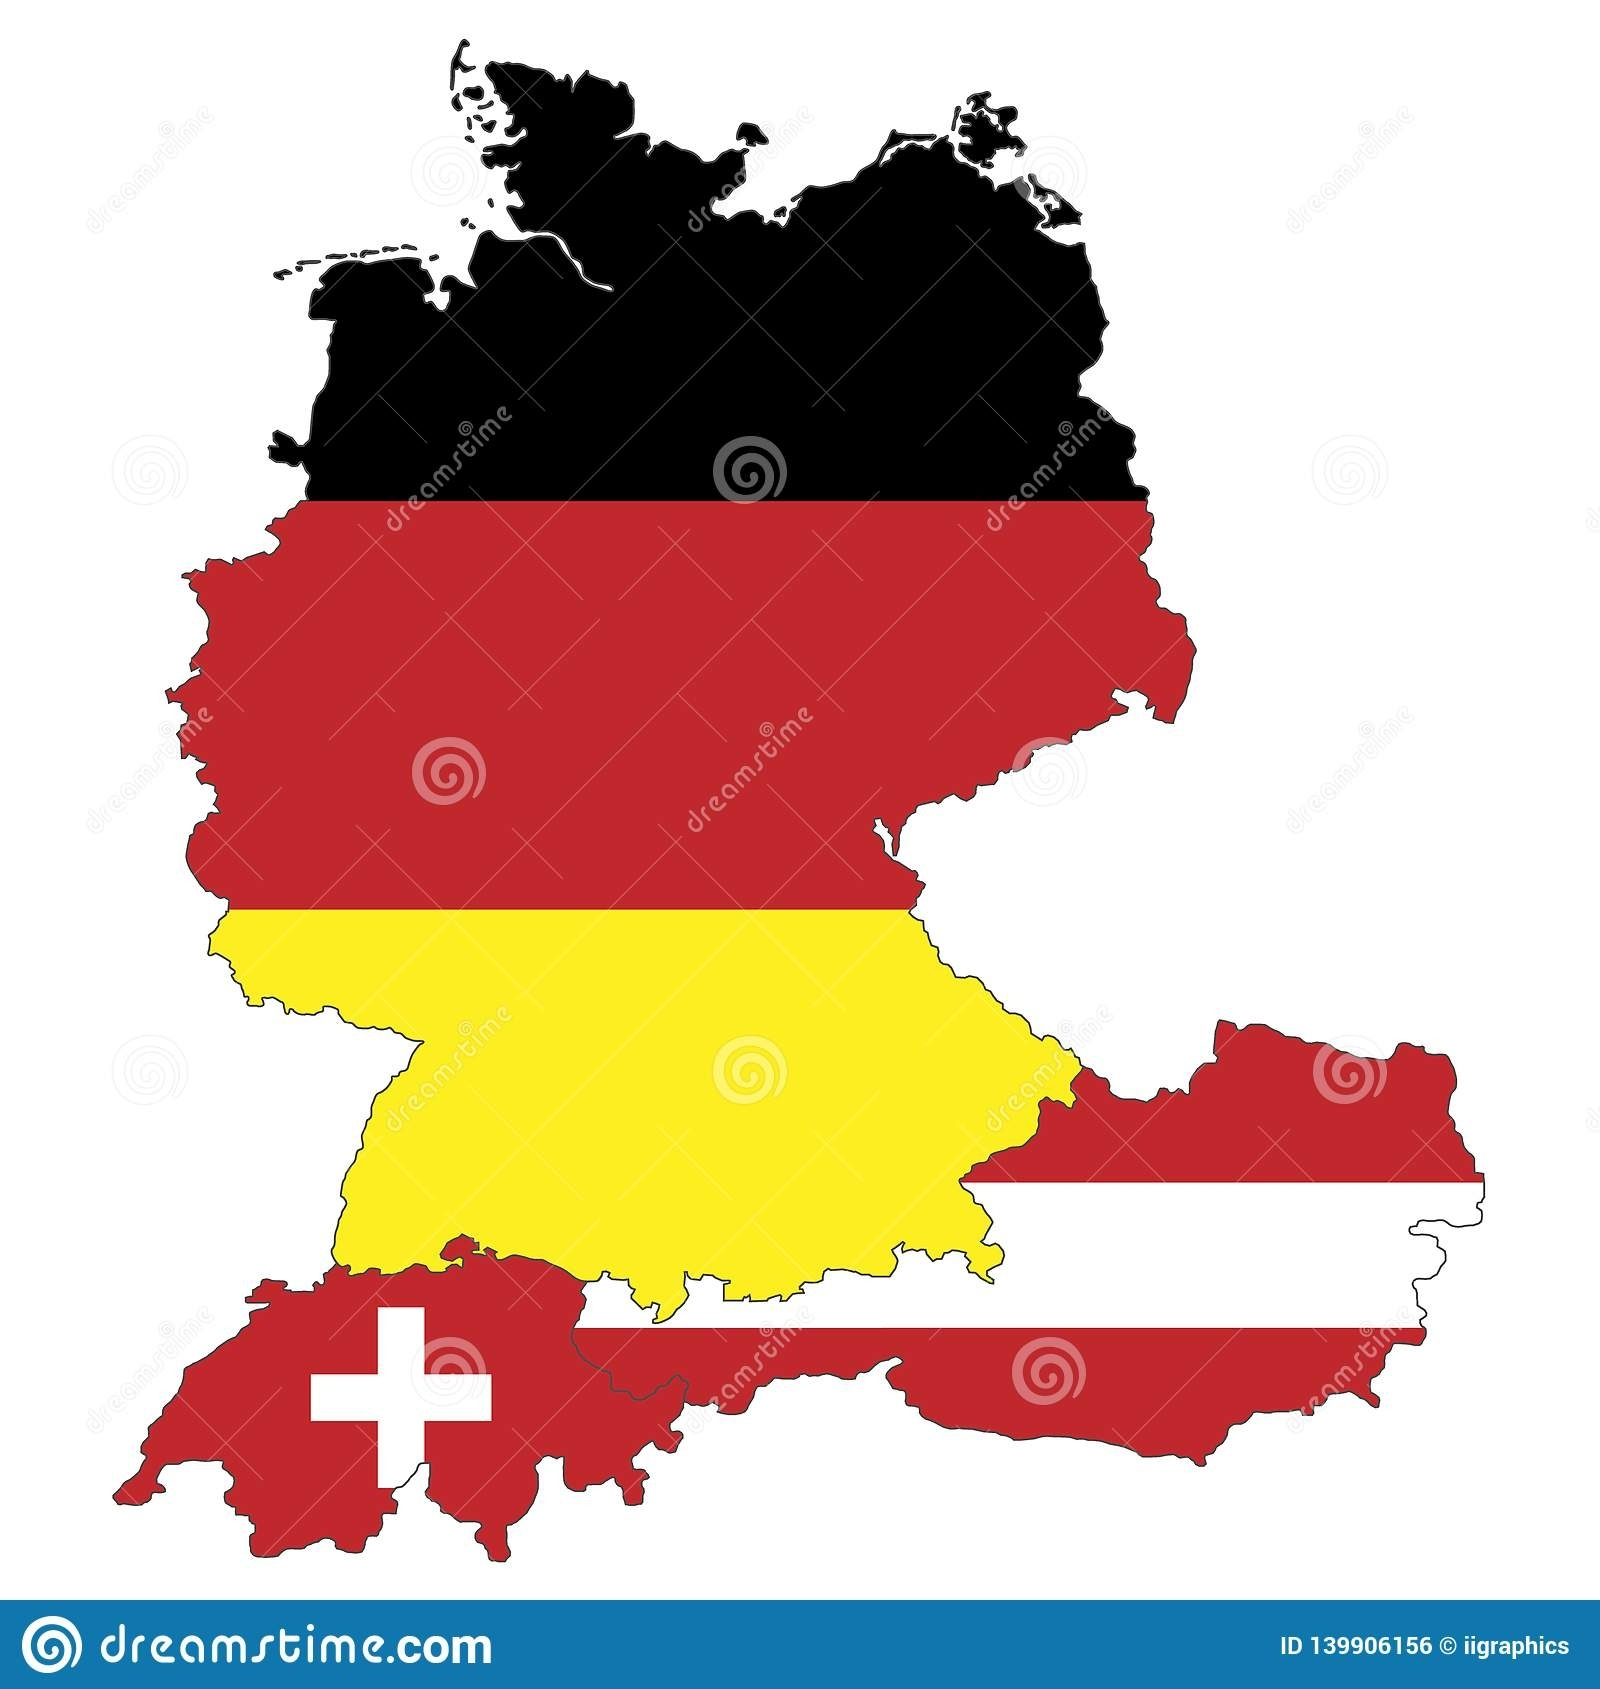 Map Of Germany, Austria And Switzerland Stock Illustration with regard to Detailed Map Of Germany And Austria